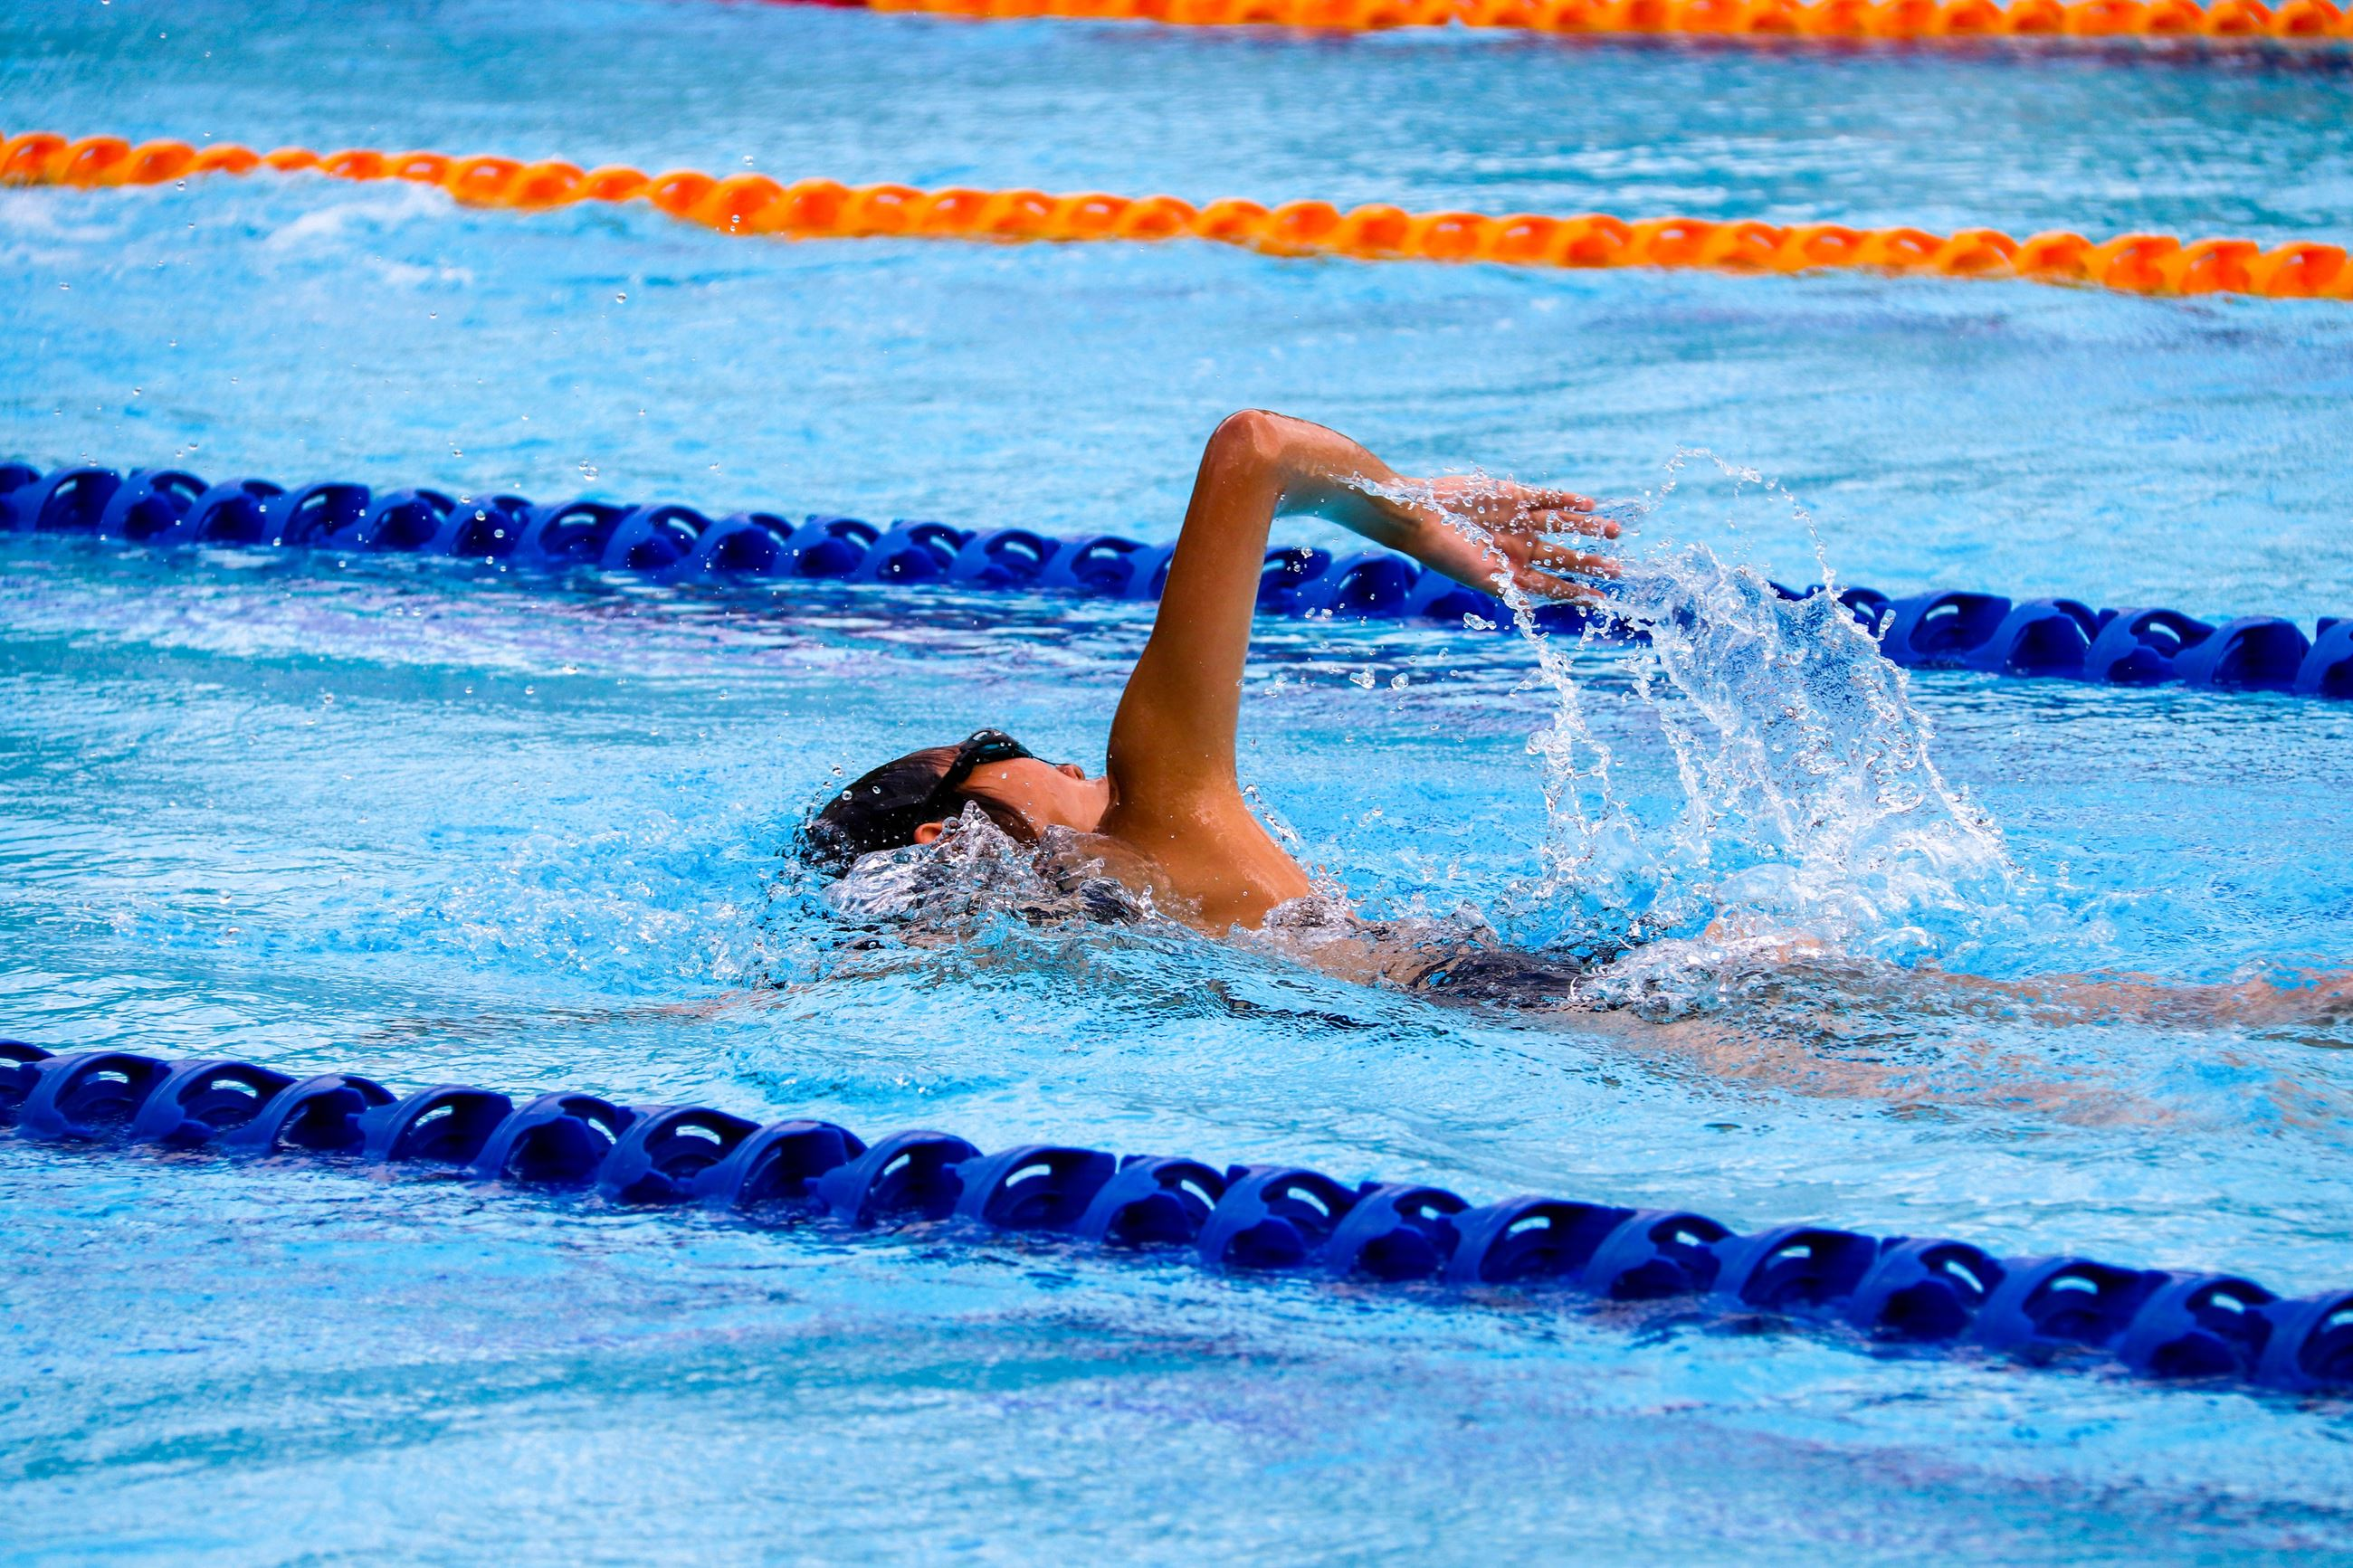 Image of a swimmer in a swimming lap lane between orange and blue string buoys.